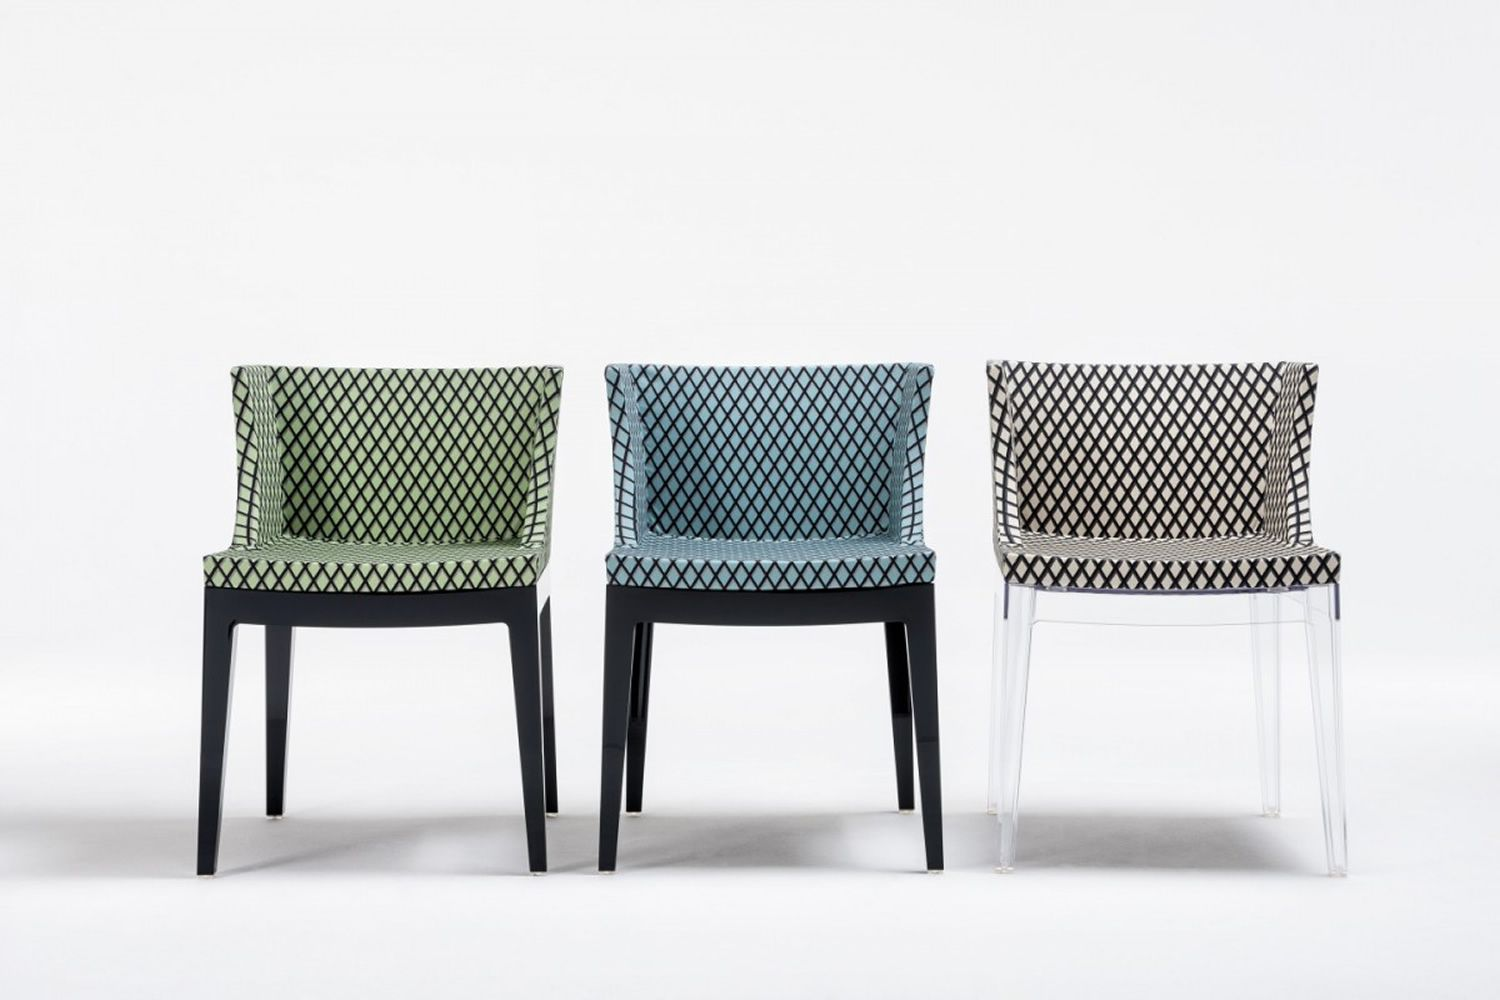 Mademoiselle memphis by sottsass fauteuil design s rie kartell goes sottsass - Fauteuil kartell mademoiselle ...